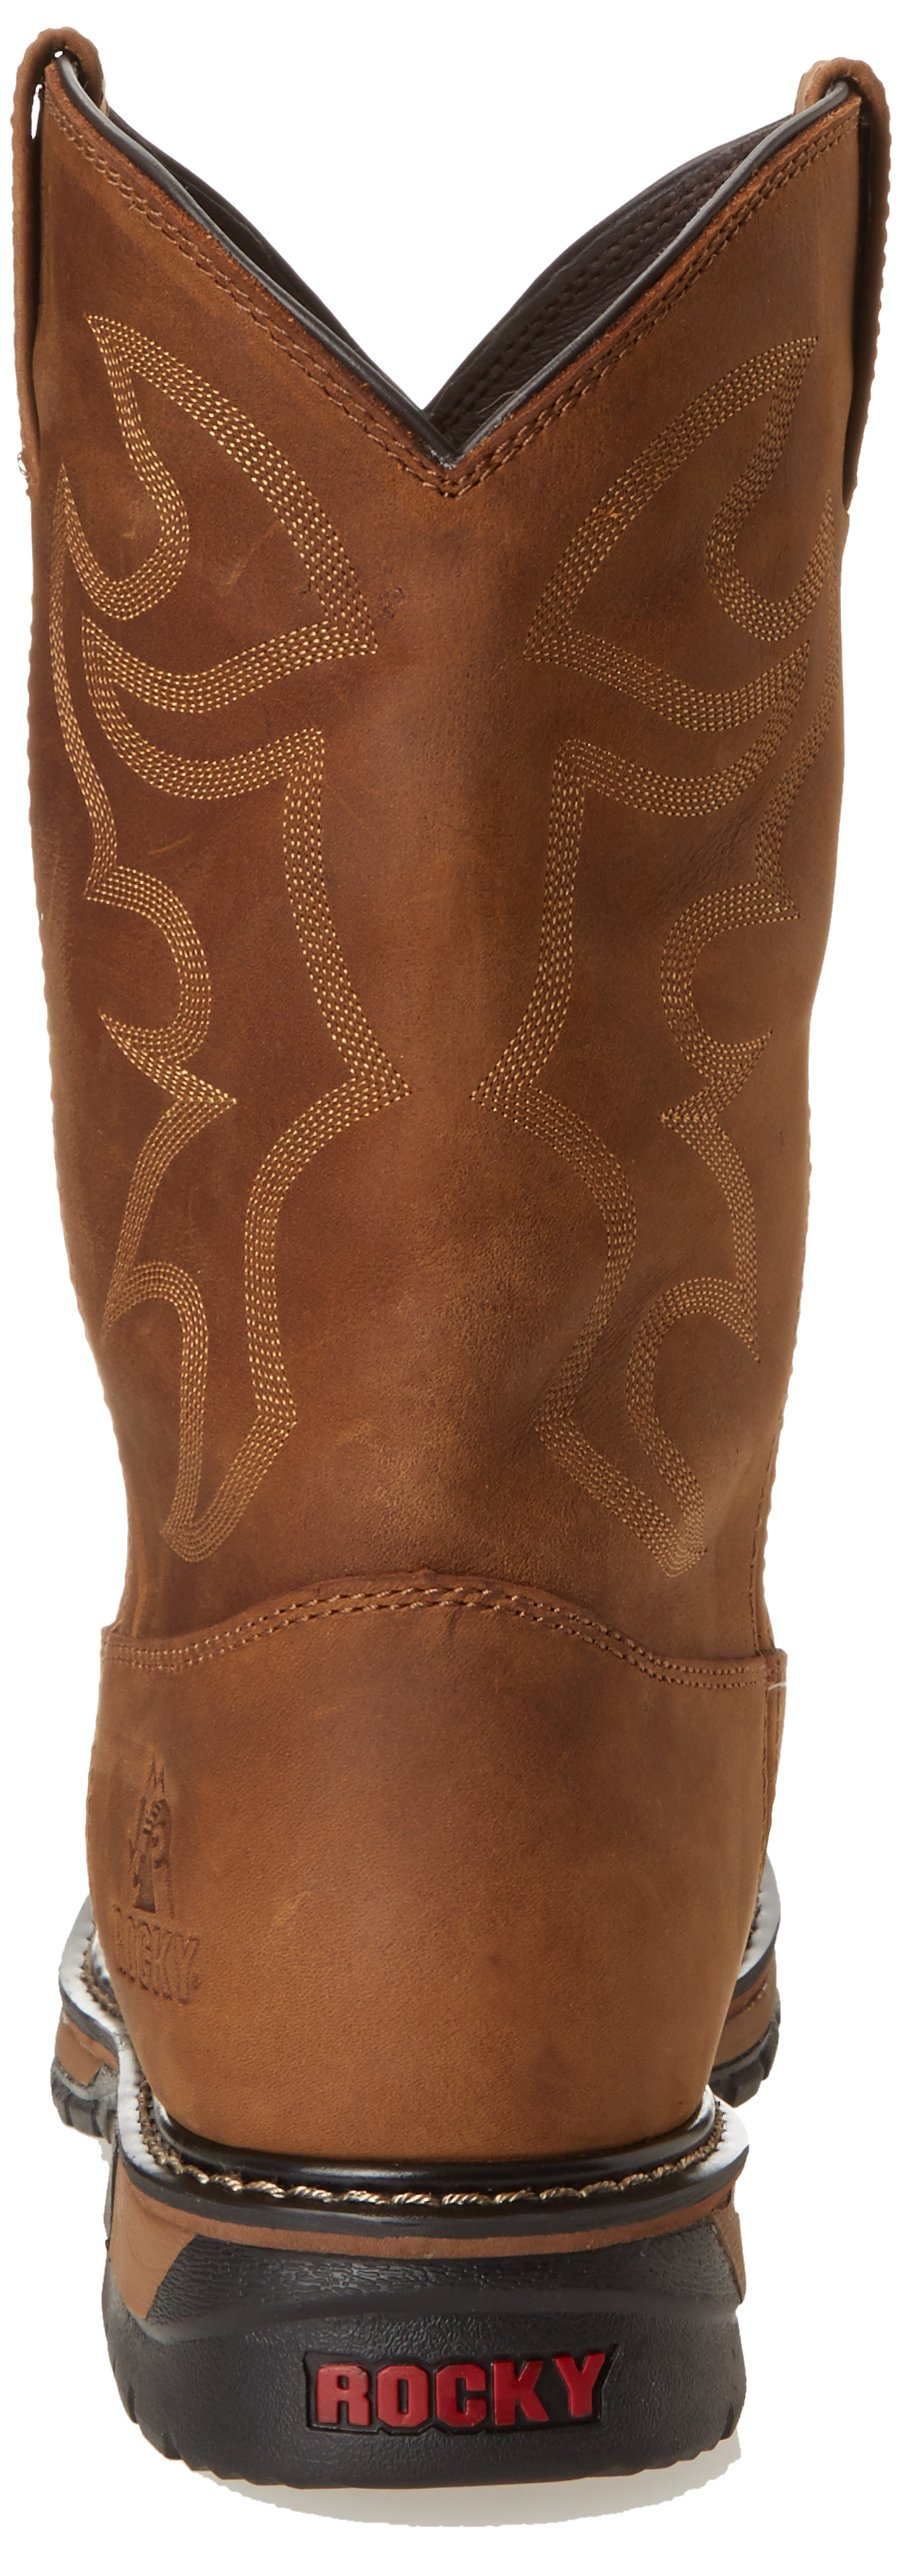 Rocky Men's FQ0002733 Boot, aztec crazy horse, 11 M US by Rocky (Image #2)